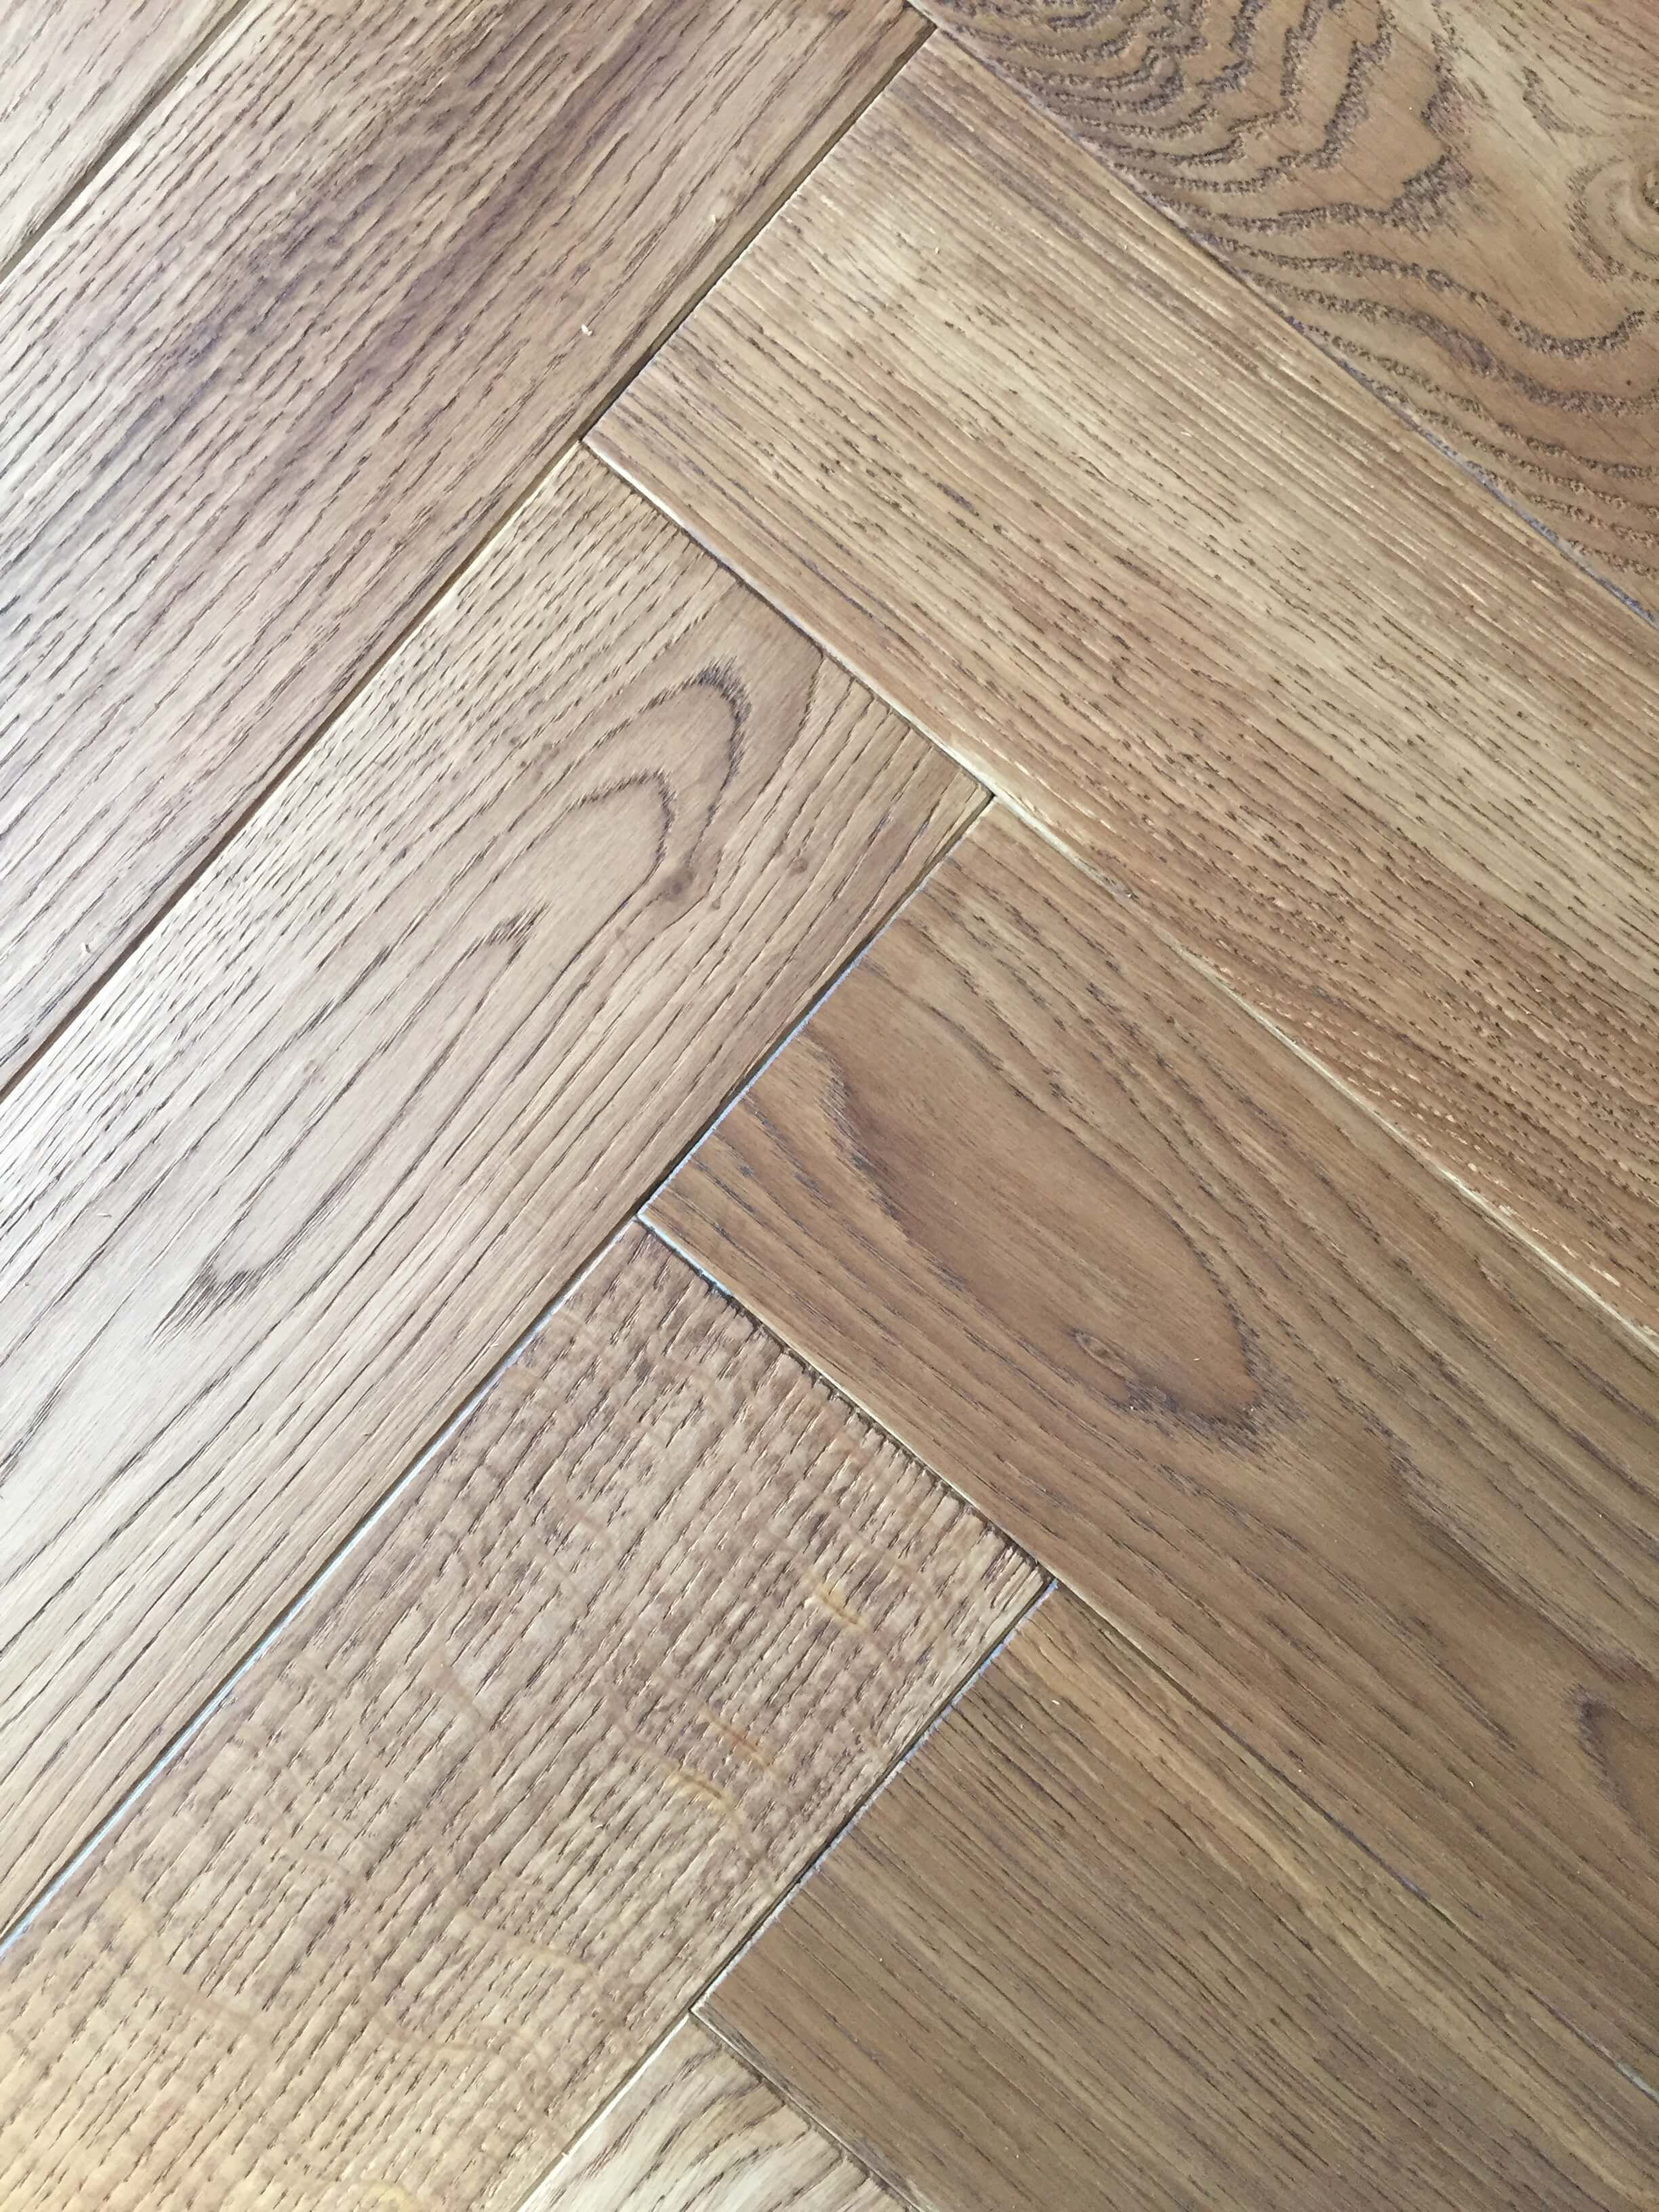 how to clean prefinished hardwood flooring best product of the wood maker page 5 wood wallpaper pertaining to real wood flooring inspirations of oak wood flooring